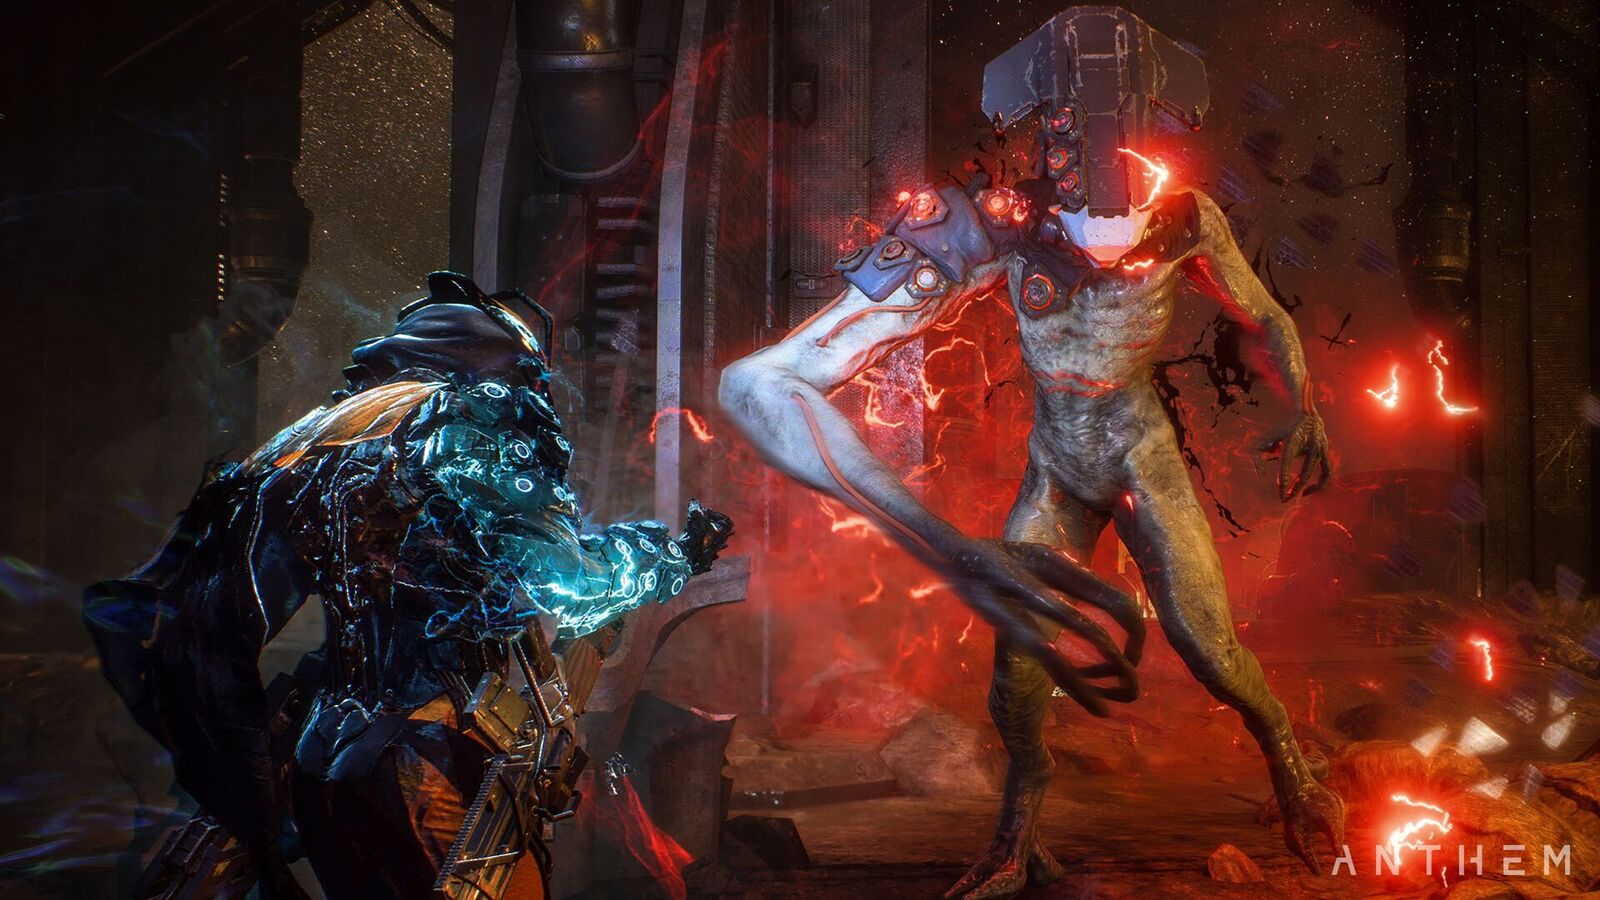 Anthem Lead Producer Ben Irving Announces Departure from BioWare